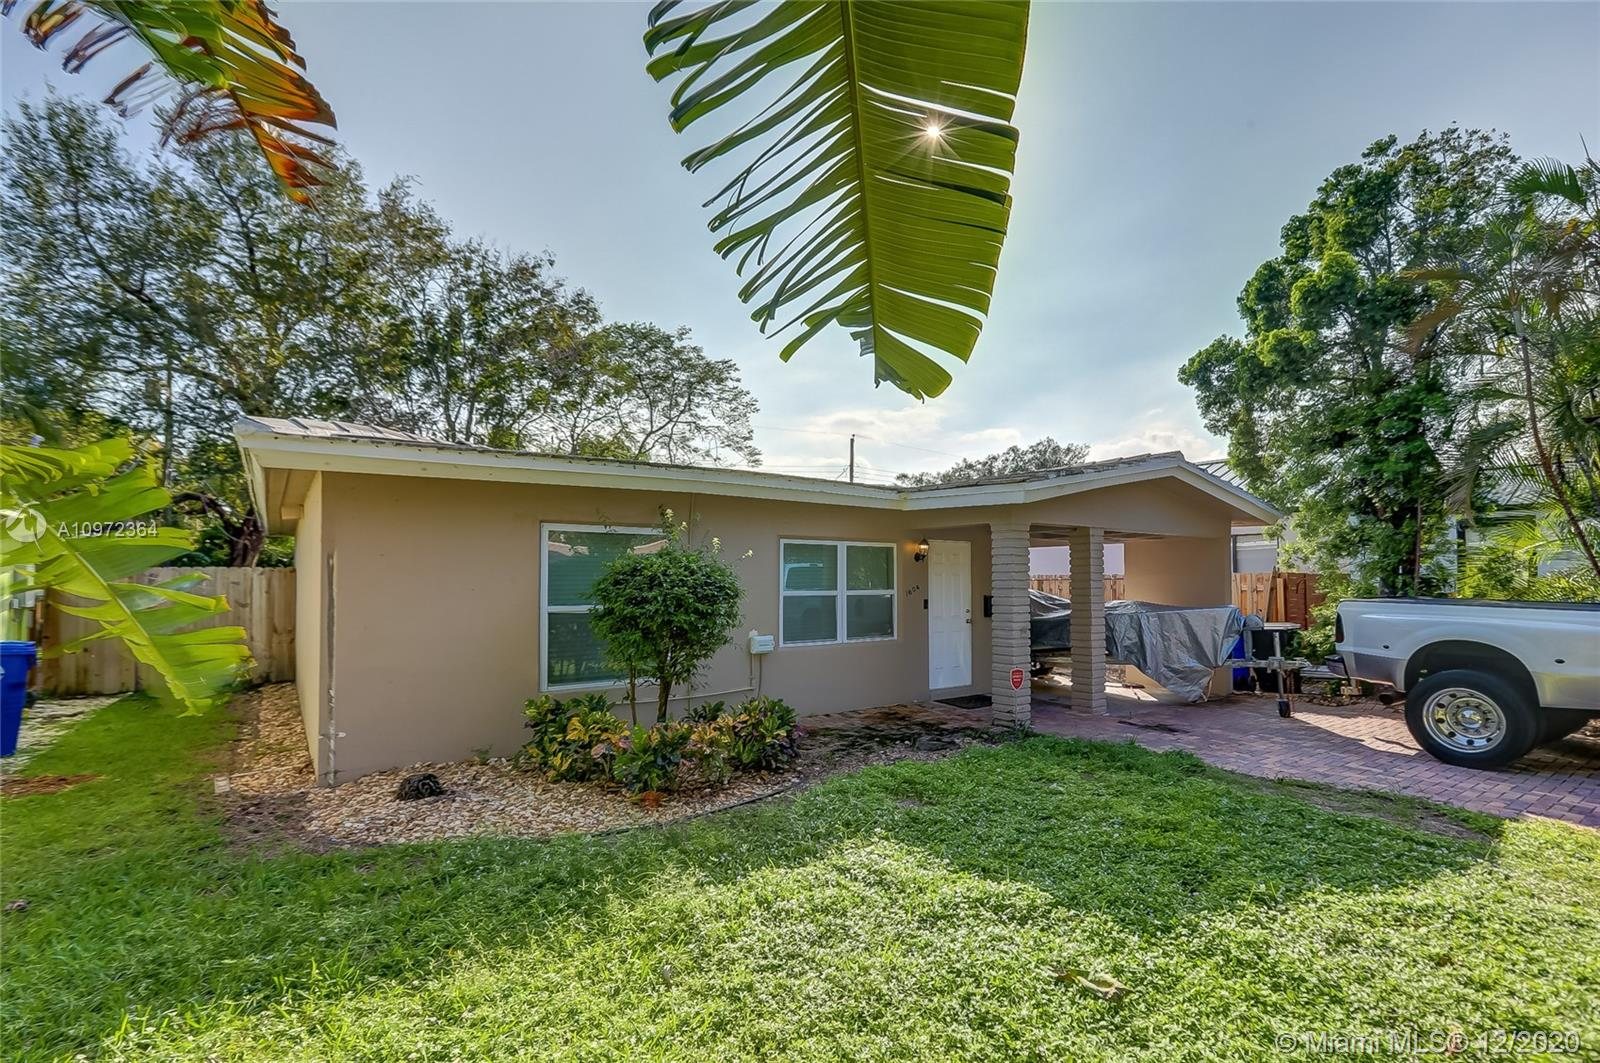 Updated w/ grey floors, stainless, granite, W/D & addtl storage. Large fenced yard w/ room for pool. Walk to shops, downtown & 5 min drive to beach. Use as income properties for annual rent or Airbnb. (NOTE: 1608 yellow home next door also for sale $650k-> Key West style renovated w/ a newer kitchen w/ stainless appliances, white cabinets & granite, updated flooring, fireplace, central air, alarm, LED lighting & Washer / Dryer. Large backyard w/ garden storage & covered deck w/ trellis. Owner prefers to sell both properties together but would sell separately for this price. Home (1604) is Leased at $2,300/mth until June 30, 2021. Must purchase subject to remaining lease. 1604 Folio #5042 02 10 0230. 1608 Folio #5042 02 10 0240.